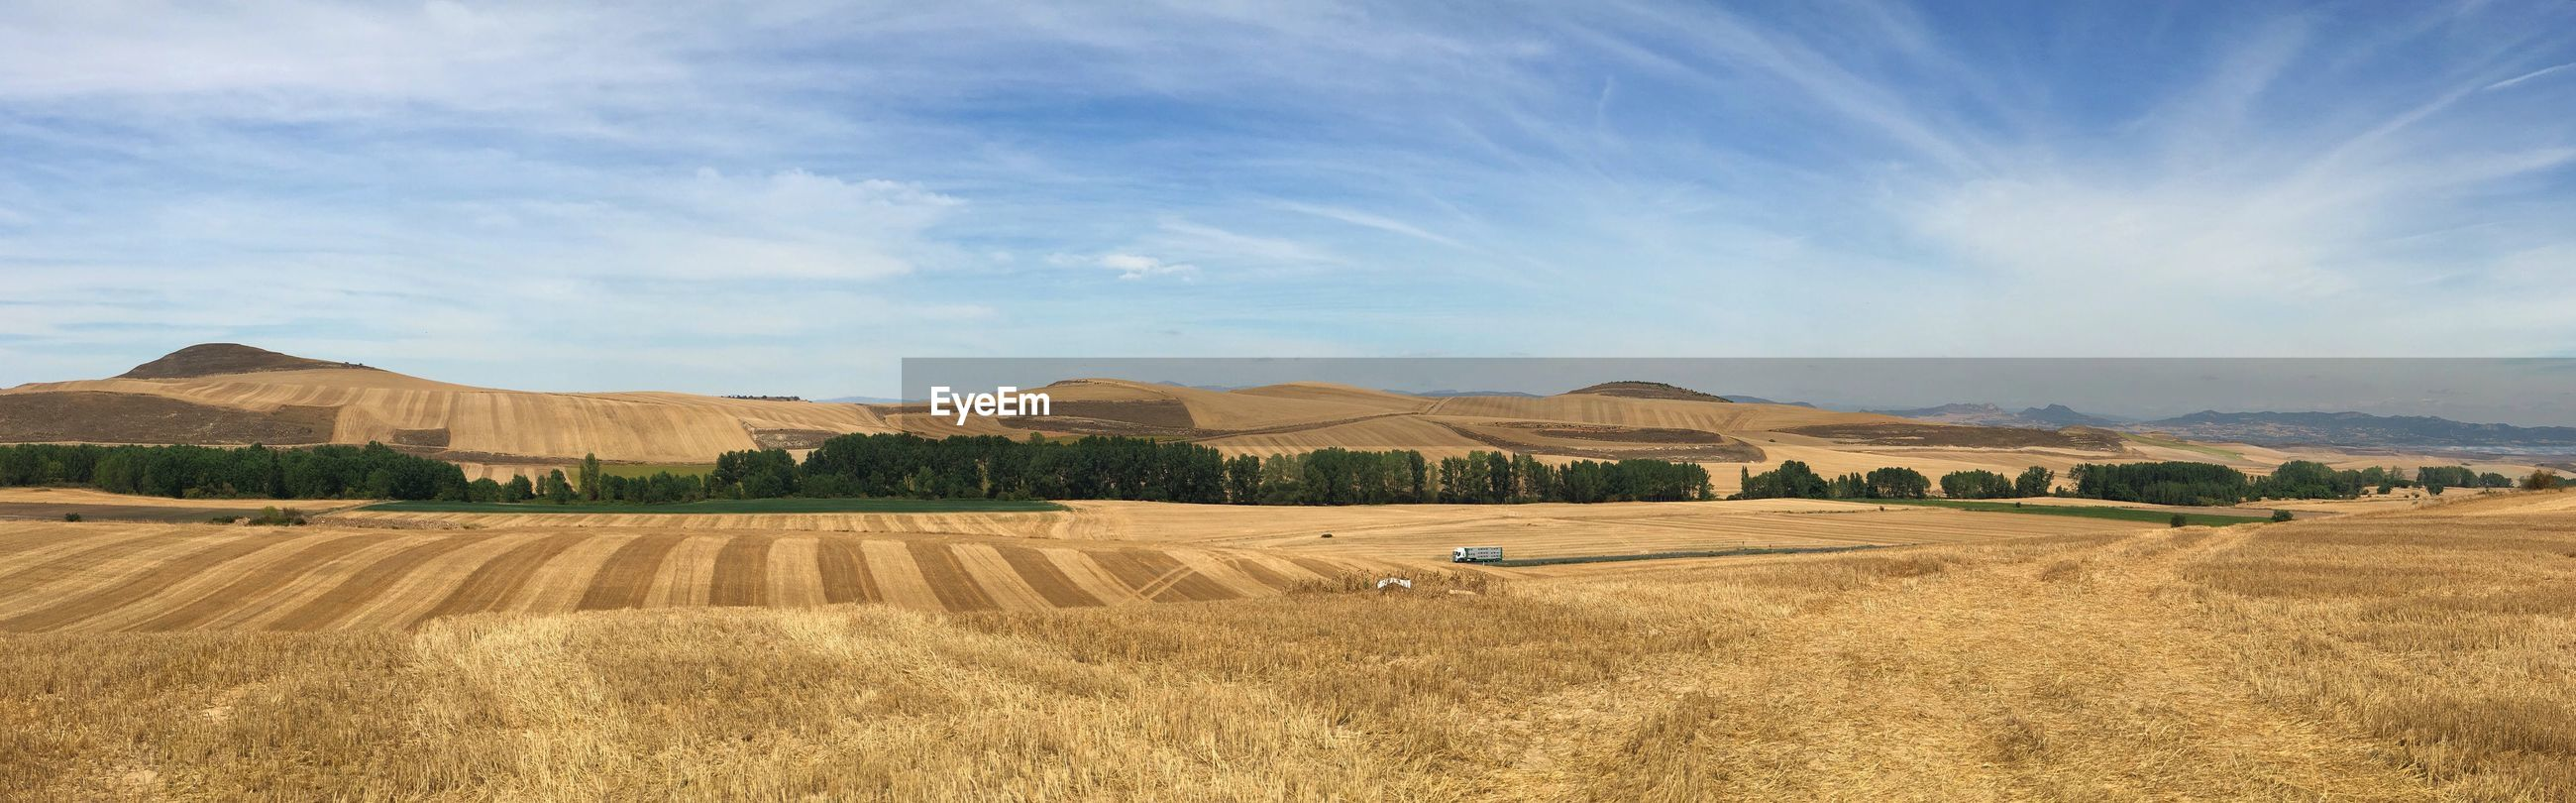 Hiking through the harvest on the camino in spain